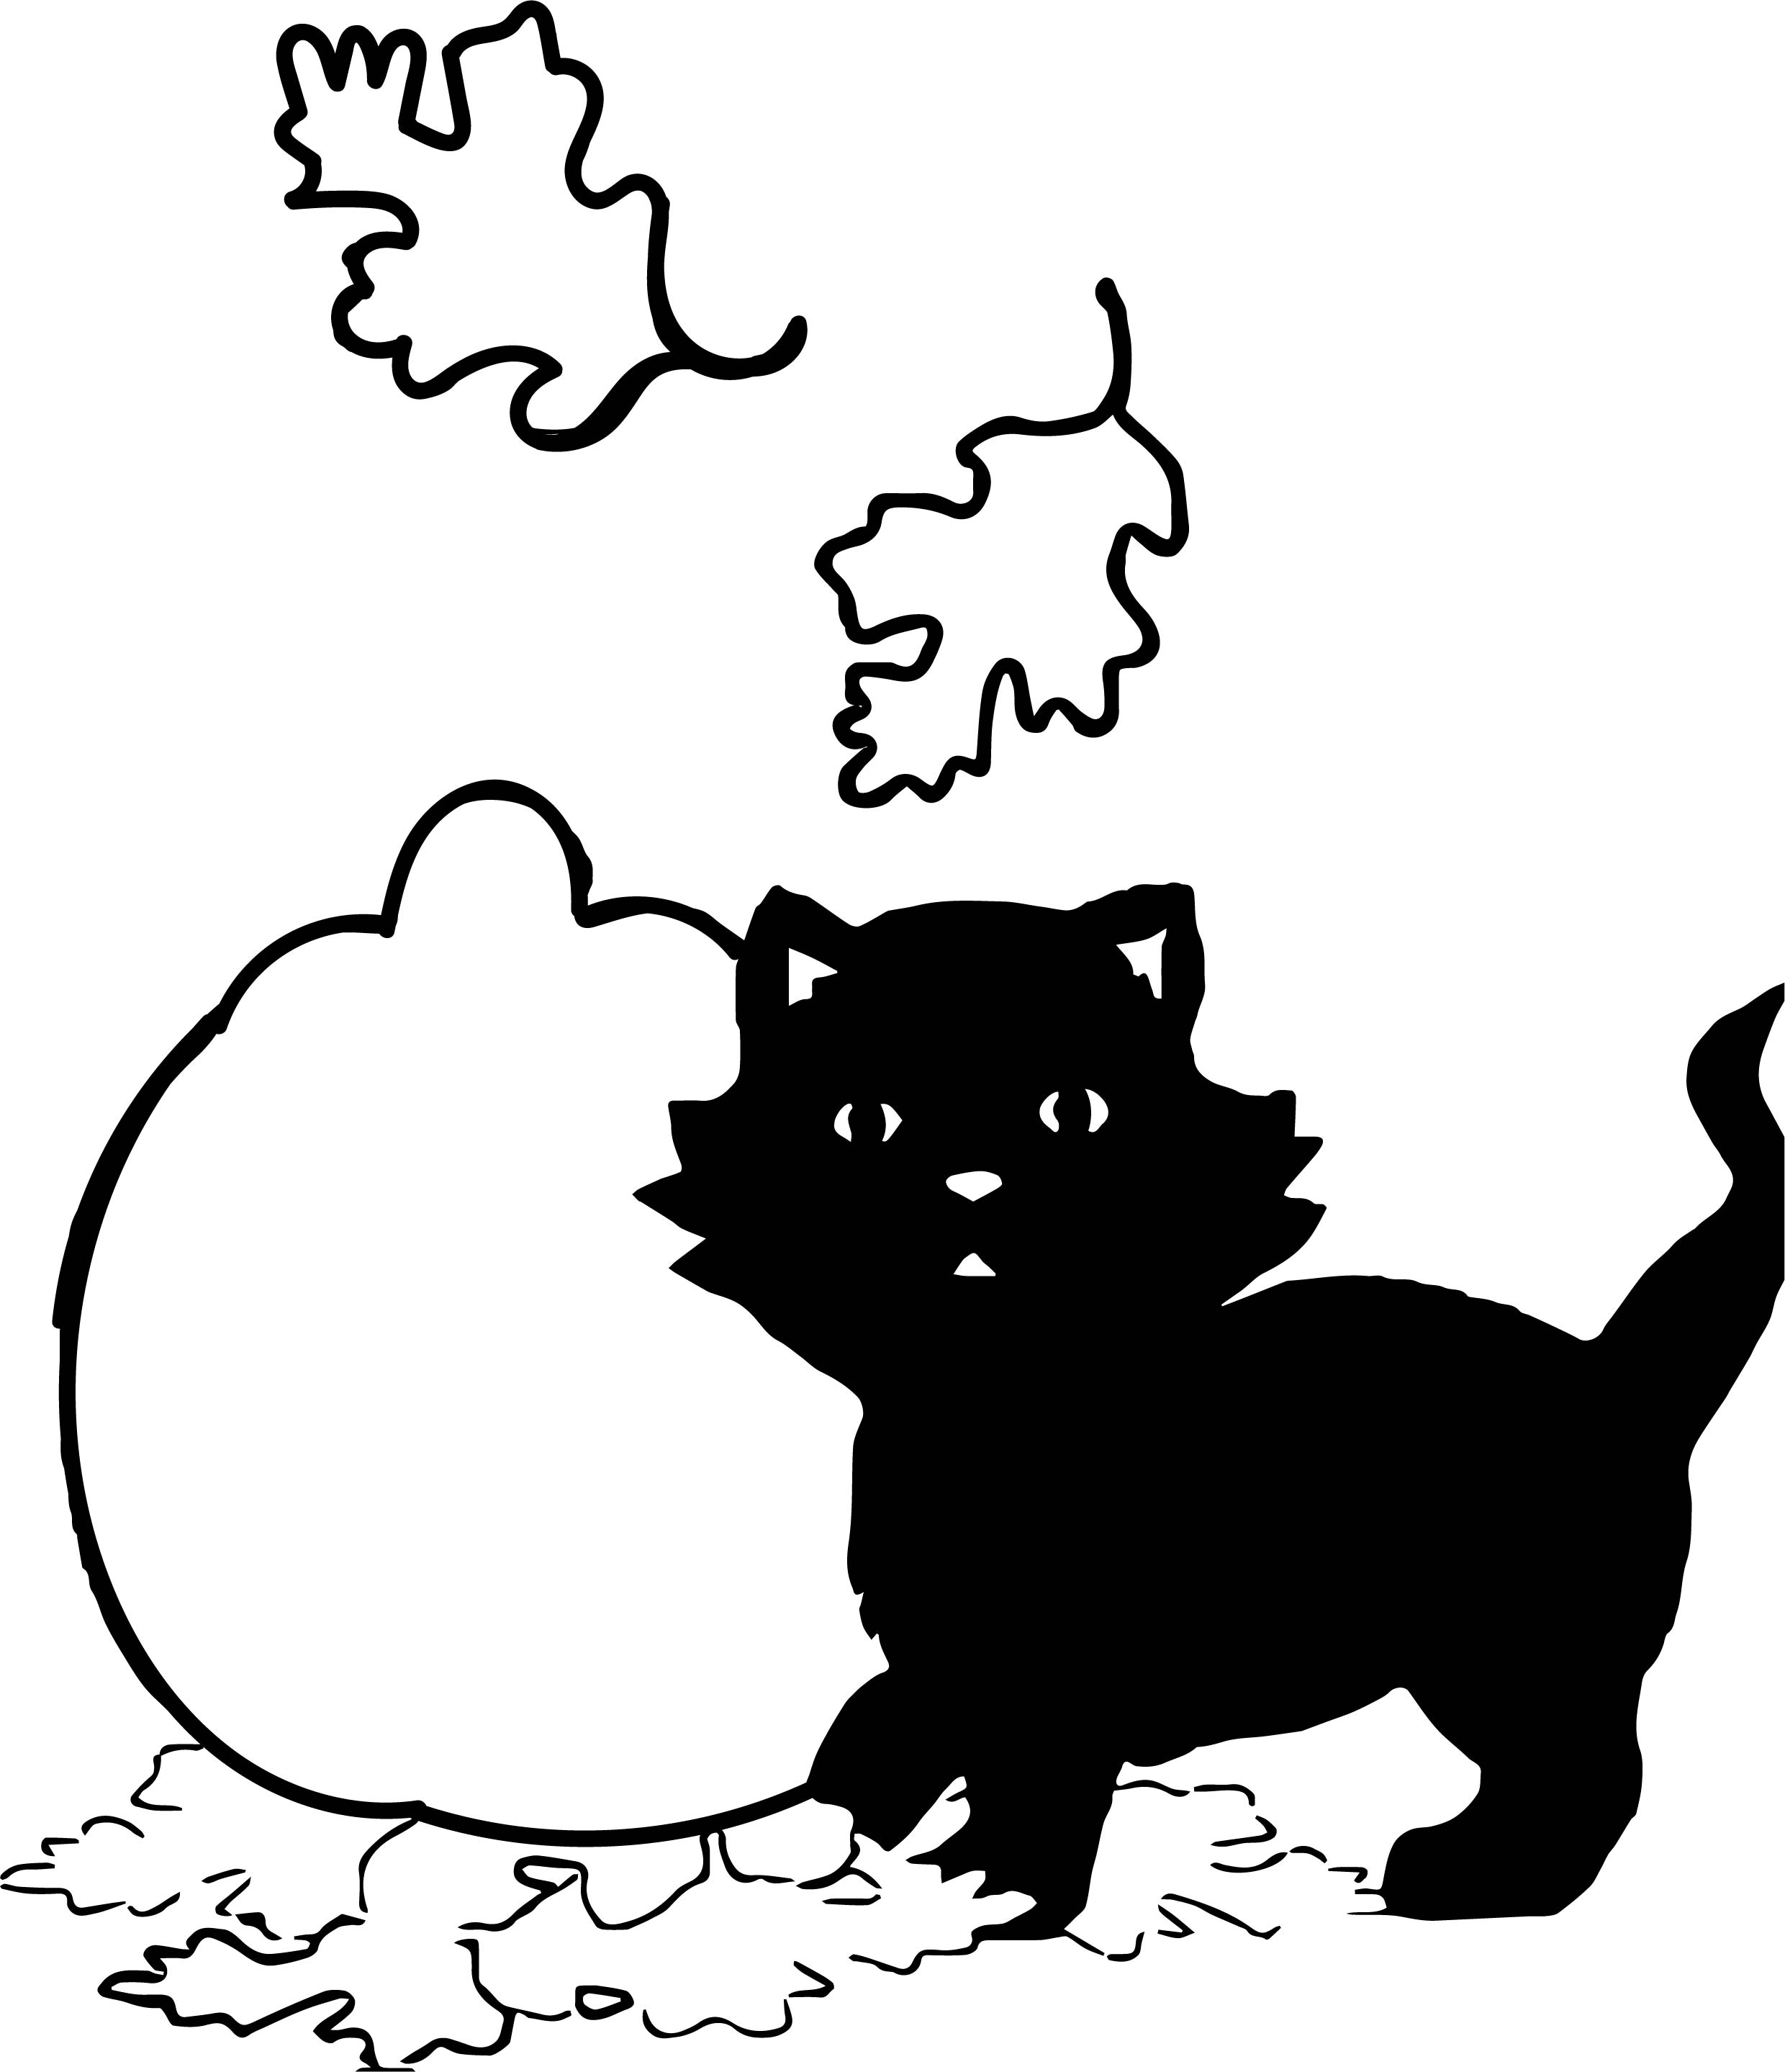 Coloring page halloween black cat